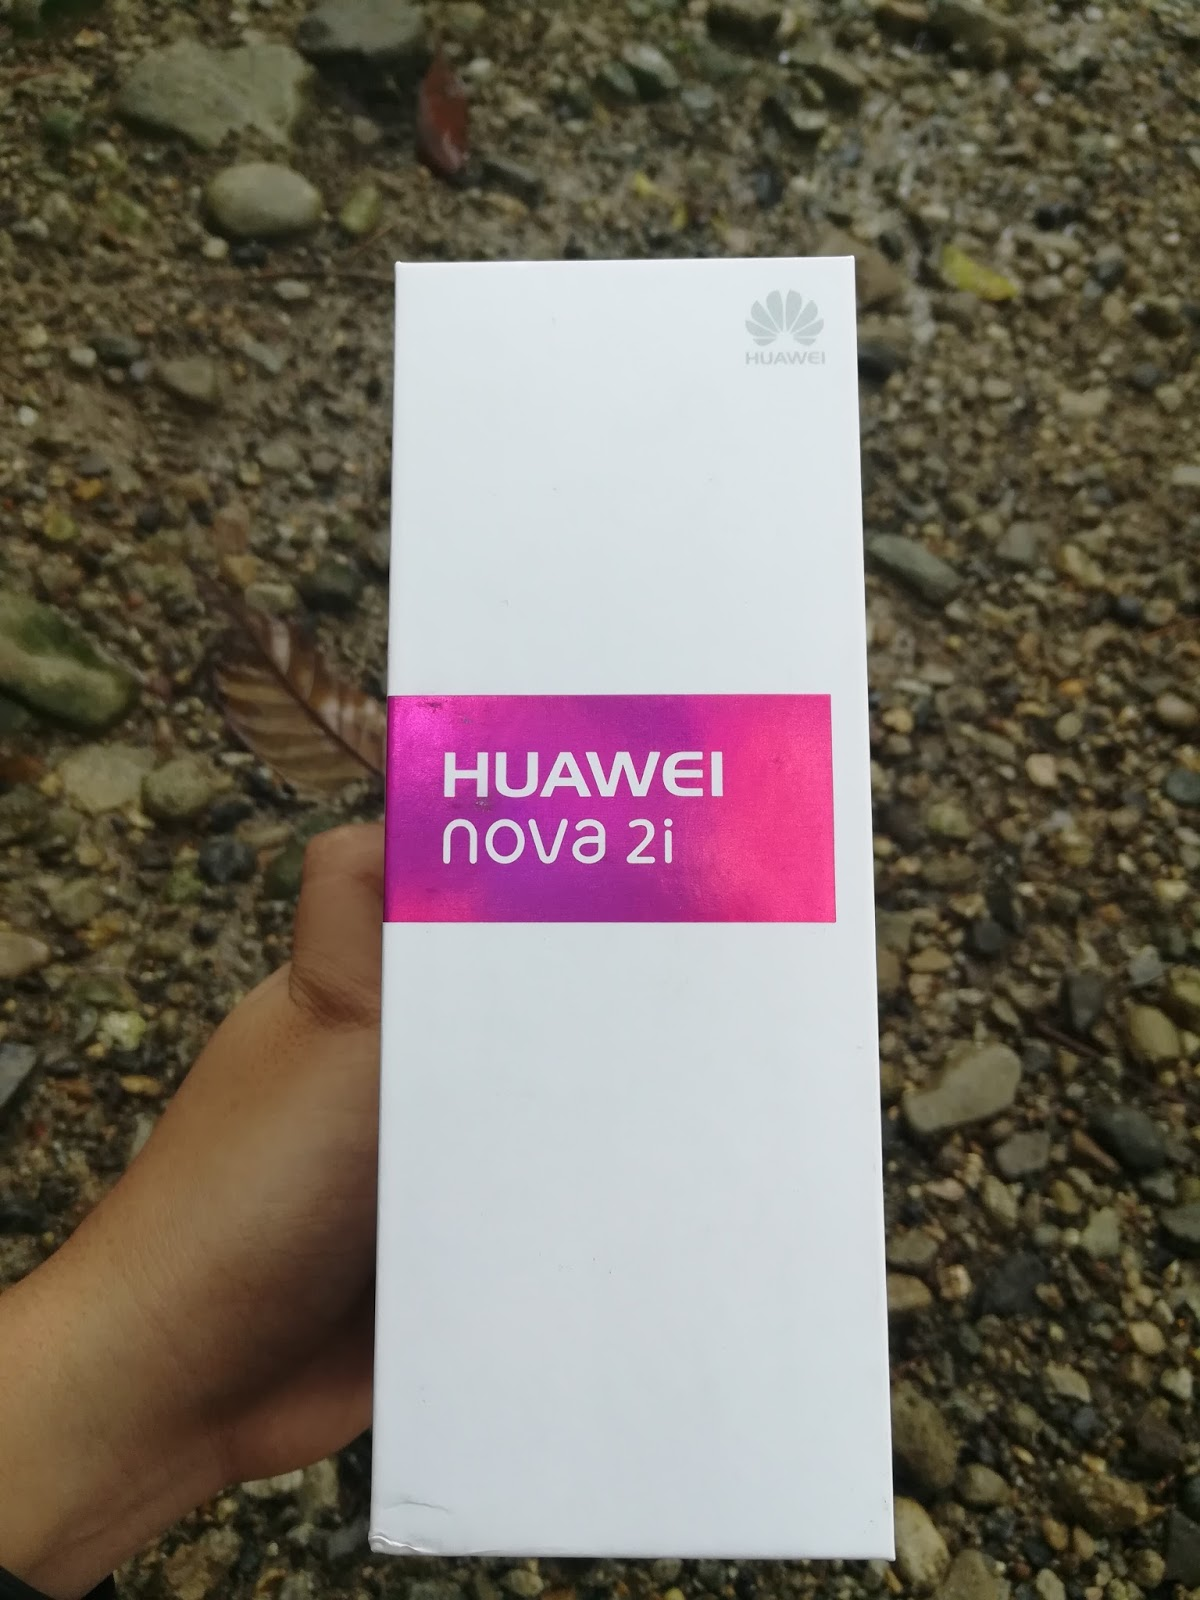 Huawei Nova 2i - Unboxing and First Impression - Pinoy Unboxer